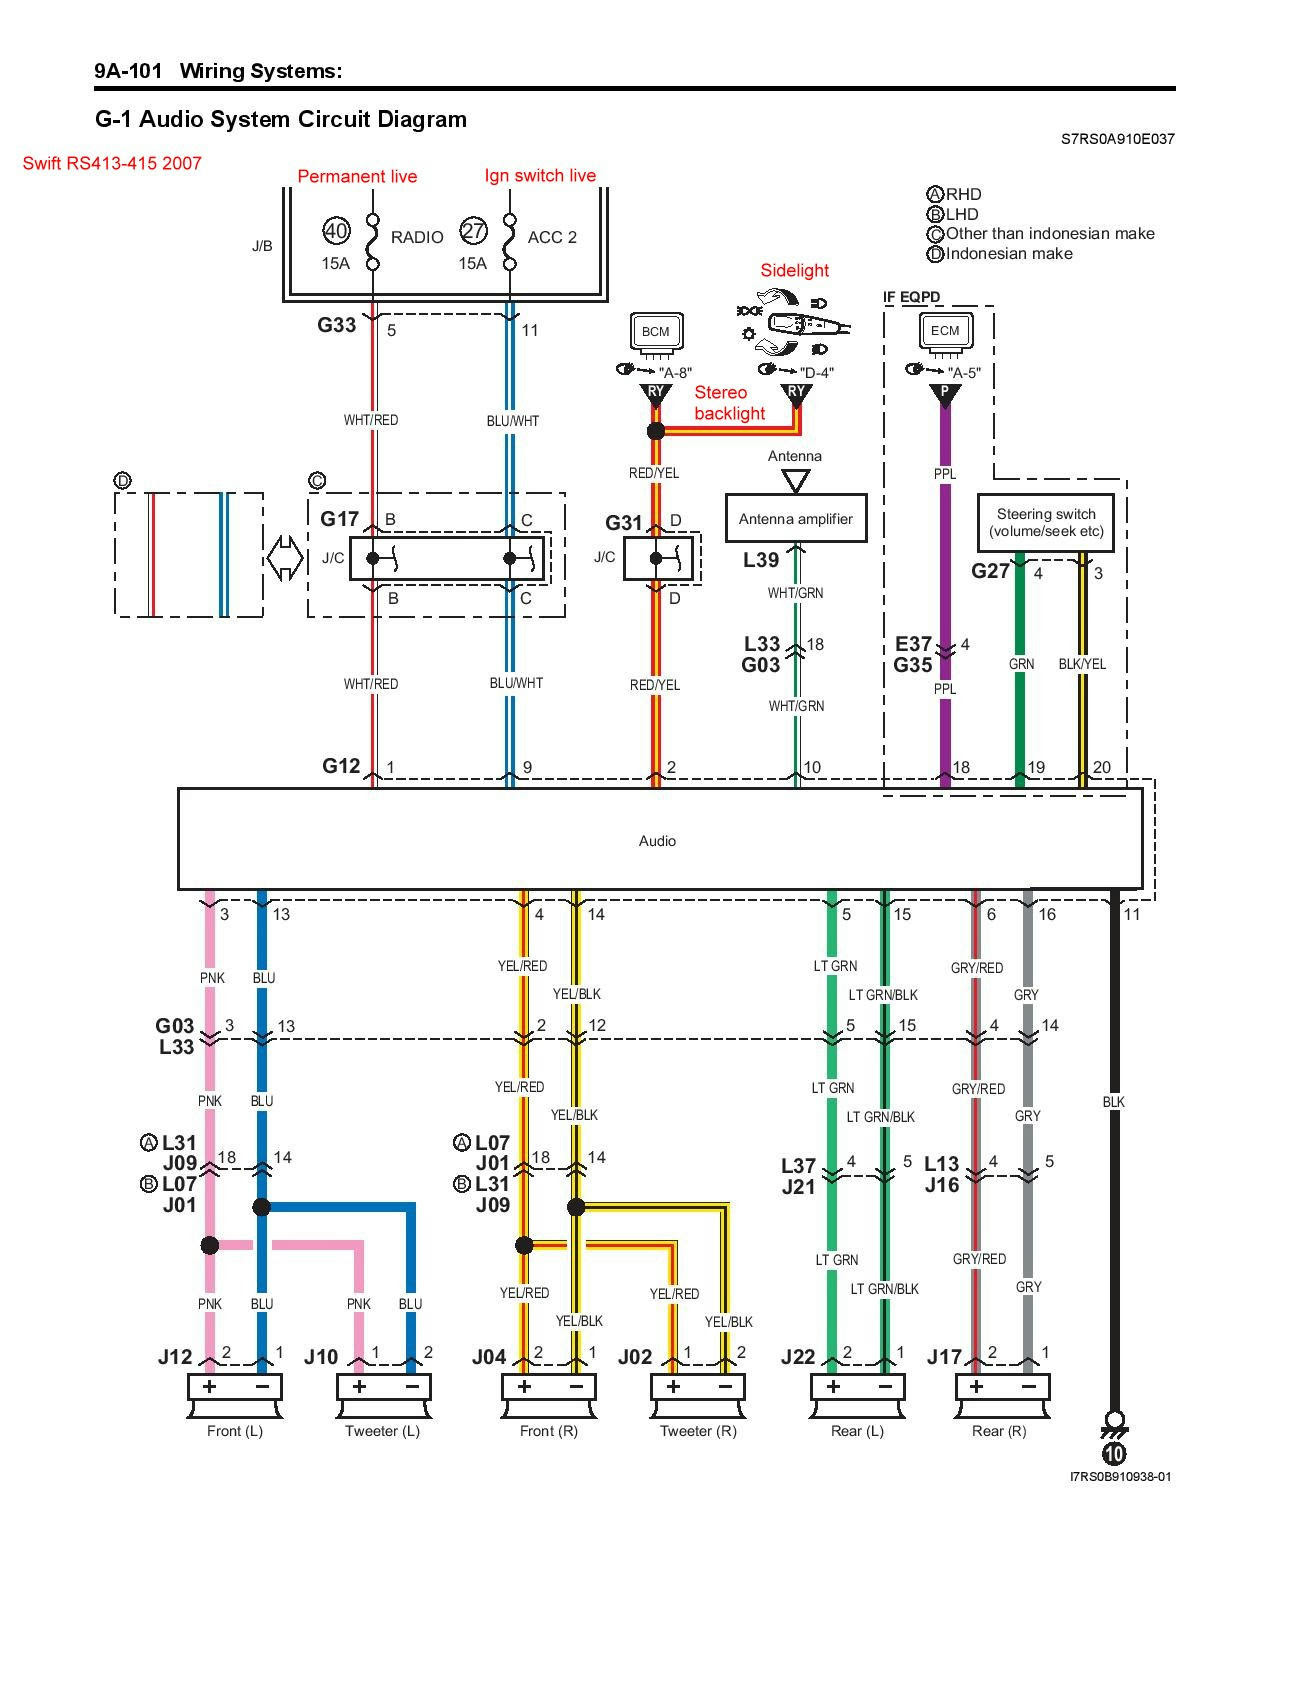 Diagram Suzuki Swift Ht51s User Wiring Diagram Full Version Hd Quality Wiring Diagram Diagramwysss Corocrozdalastria It